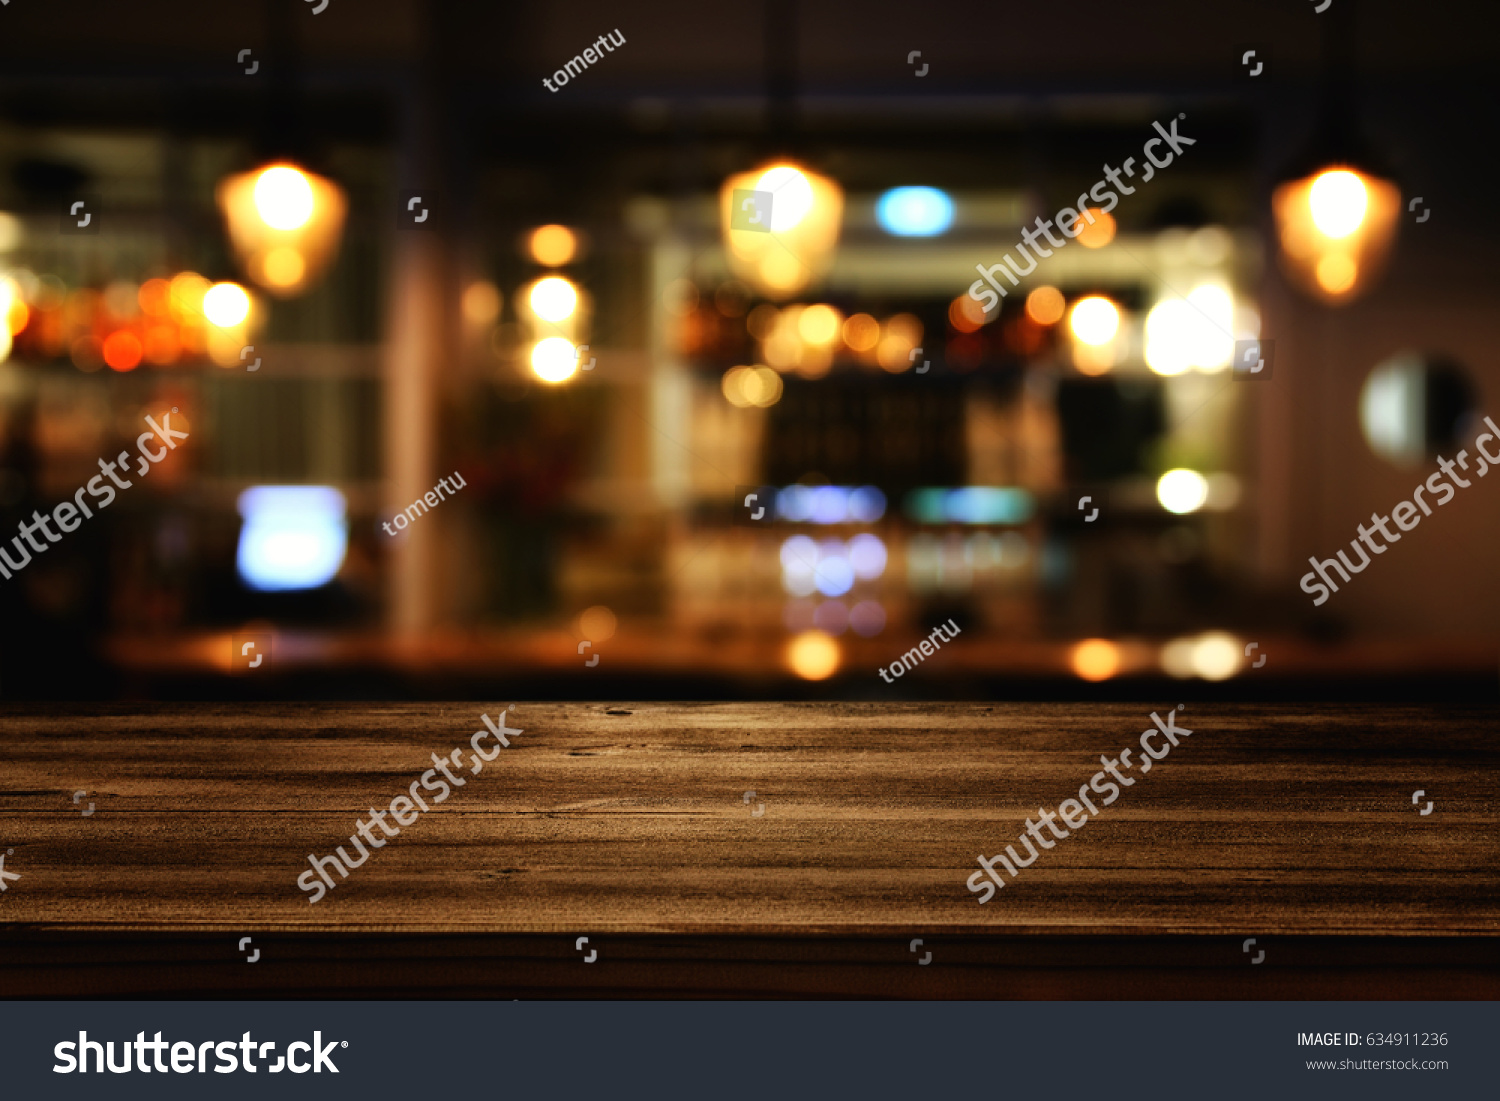 Image of wooden table in front of abstract blurred restaurant lights background. #634911236